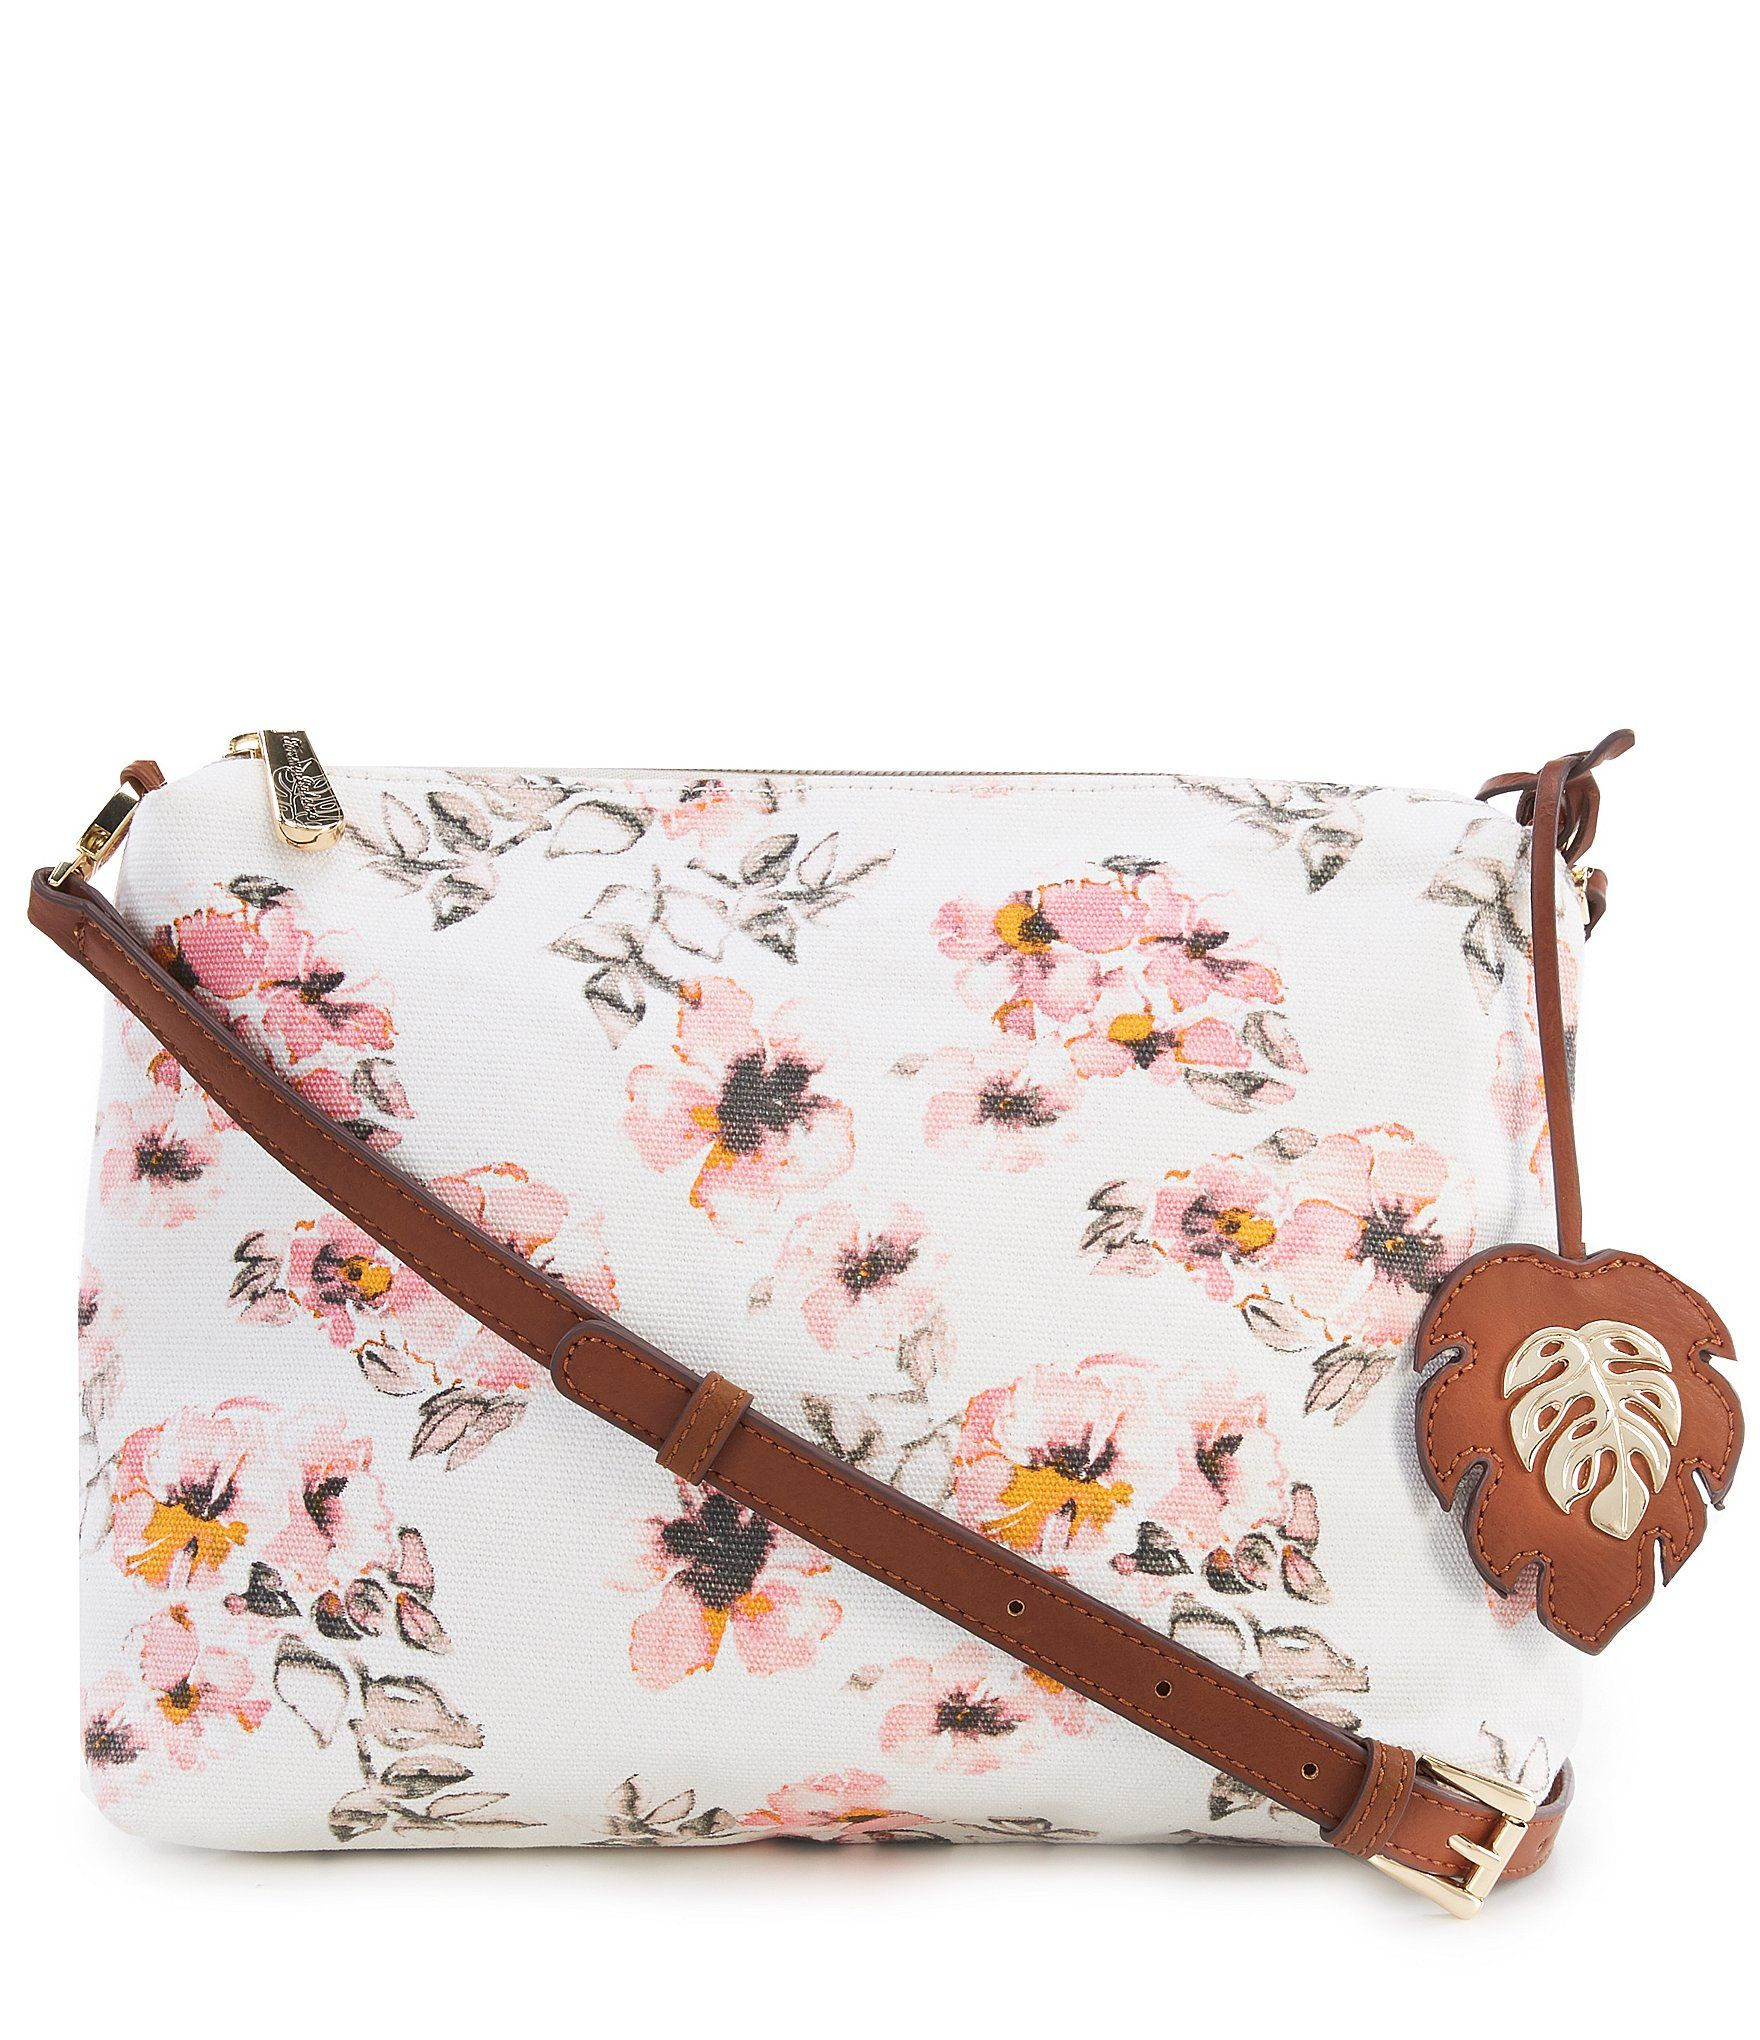 Tommy Bahama La Plancha CrossBody Bag  Dillards  a350d06c6001d